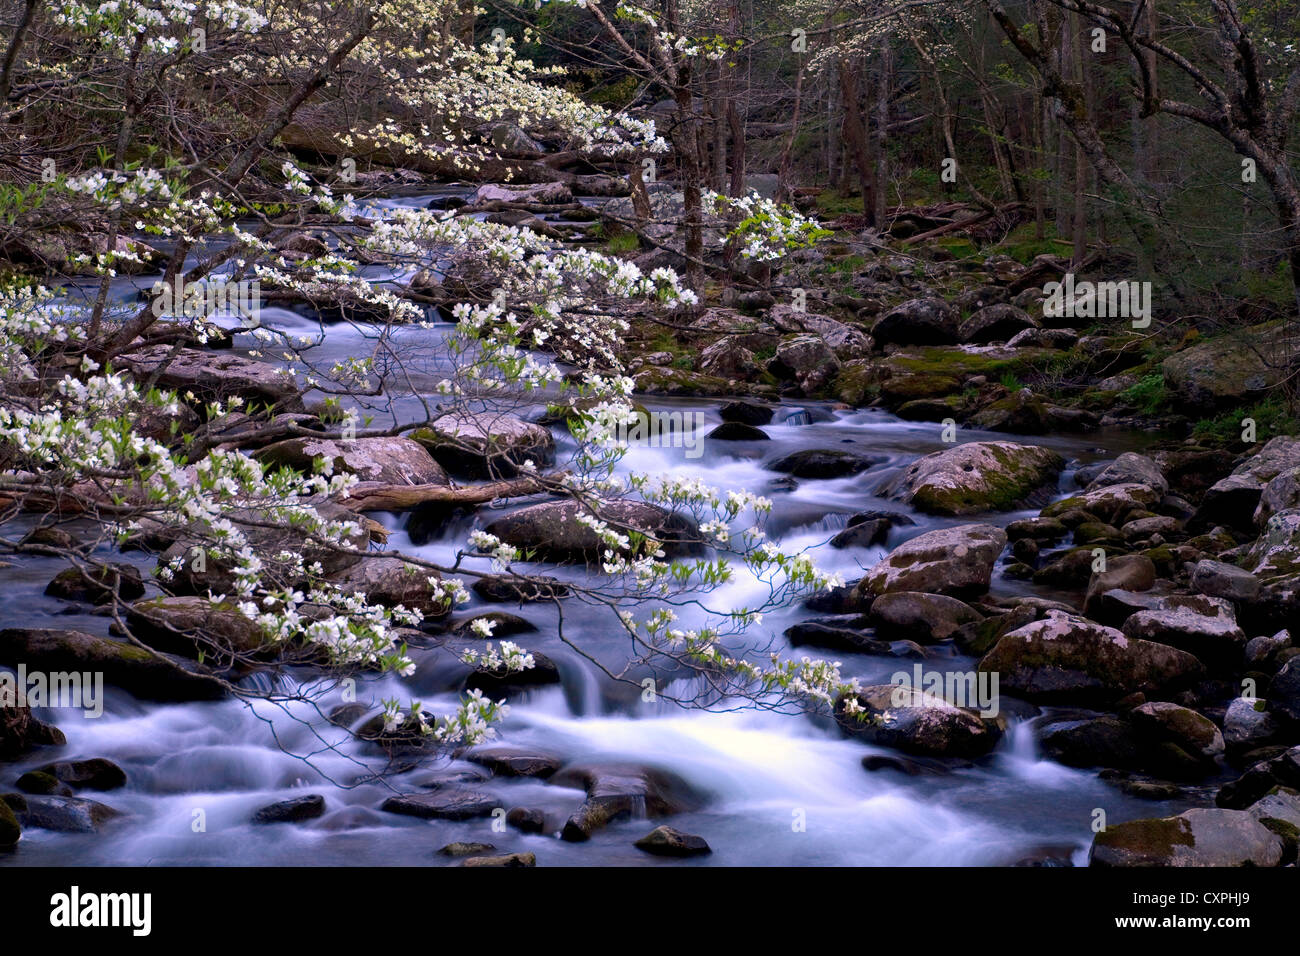 North America, USA, Tennessee, Smoky Mountain National Park. Spring in the smokies with Dogwood tree over rapids - Stock Image